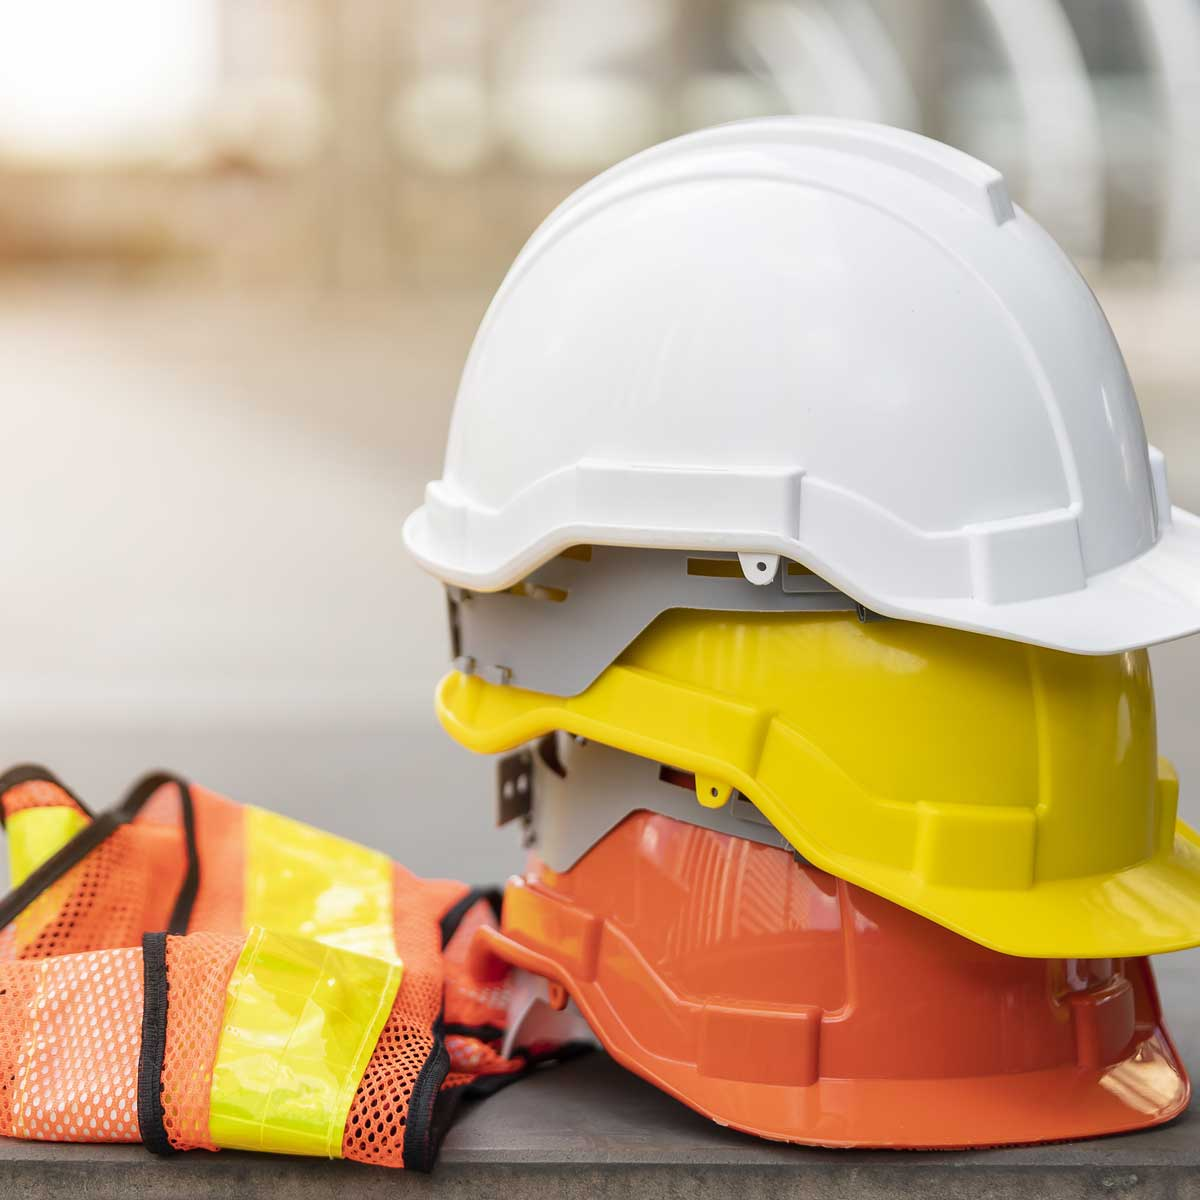 safety first project of workman as engineer or worker or crew and insurance, business concept. construction safety gear including a white, yellow and blue hard safety helmet on concrete floor on city